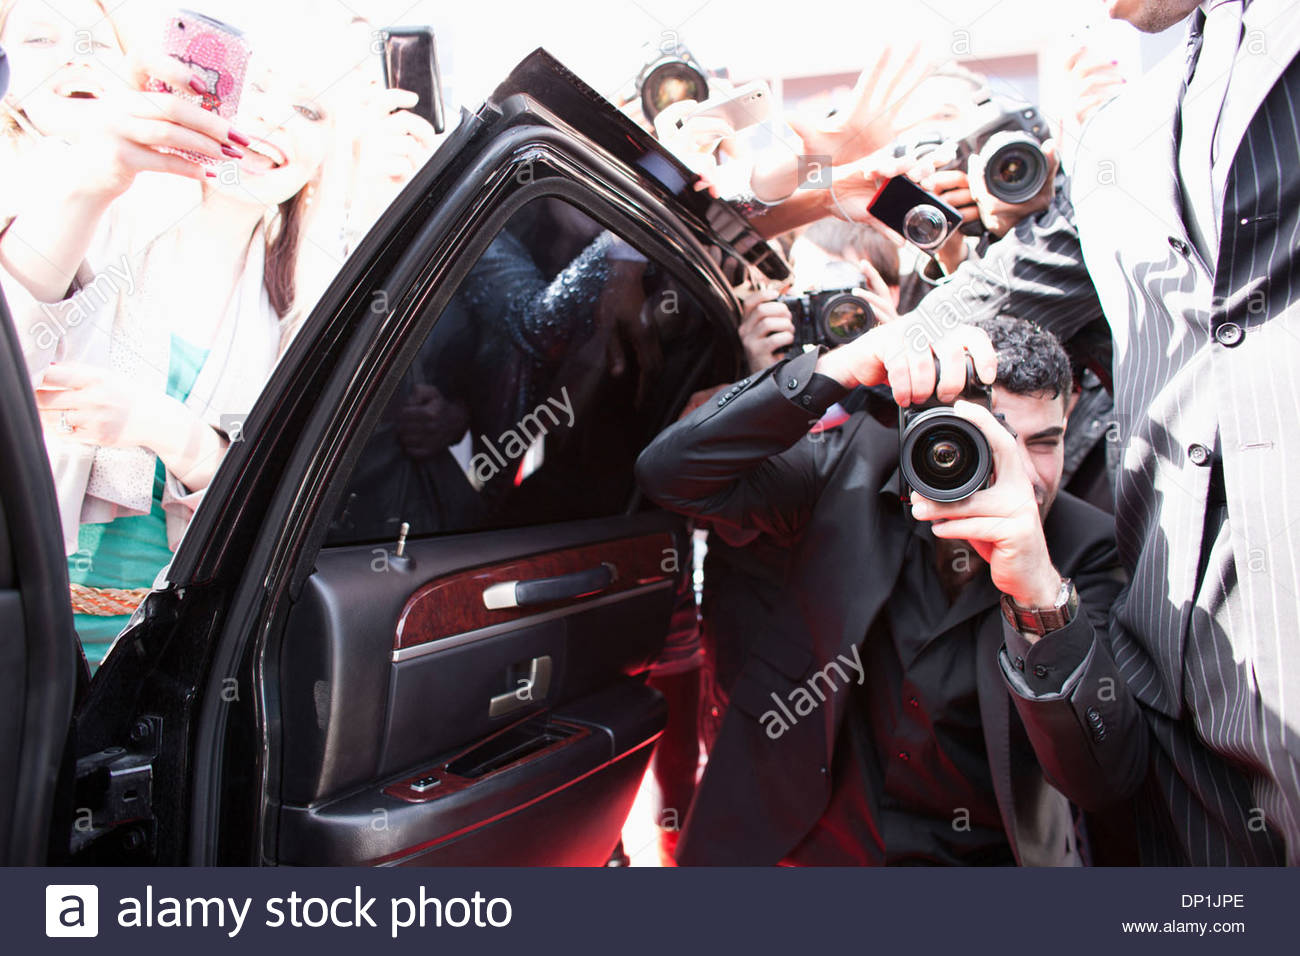 Paparazzi taking pictures of celebrity in car Stock Photo